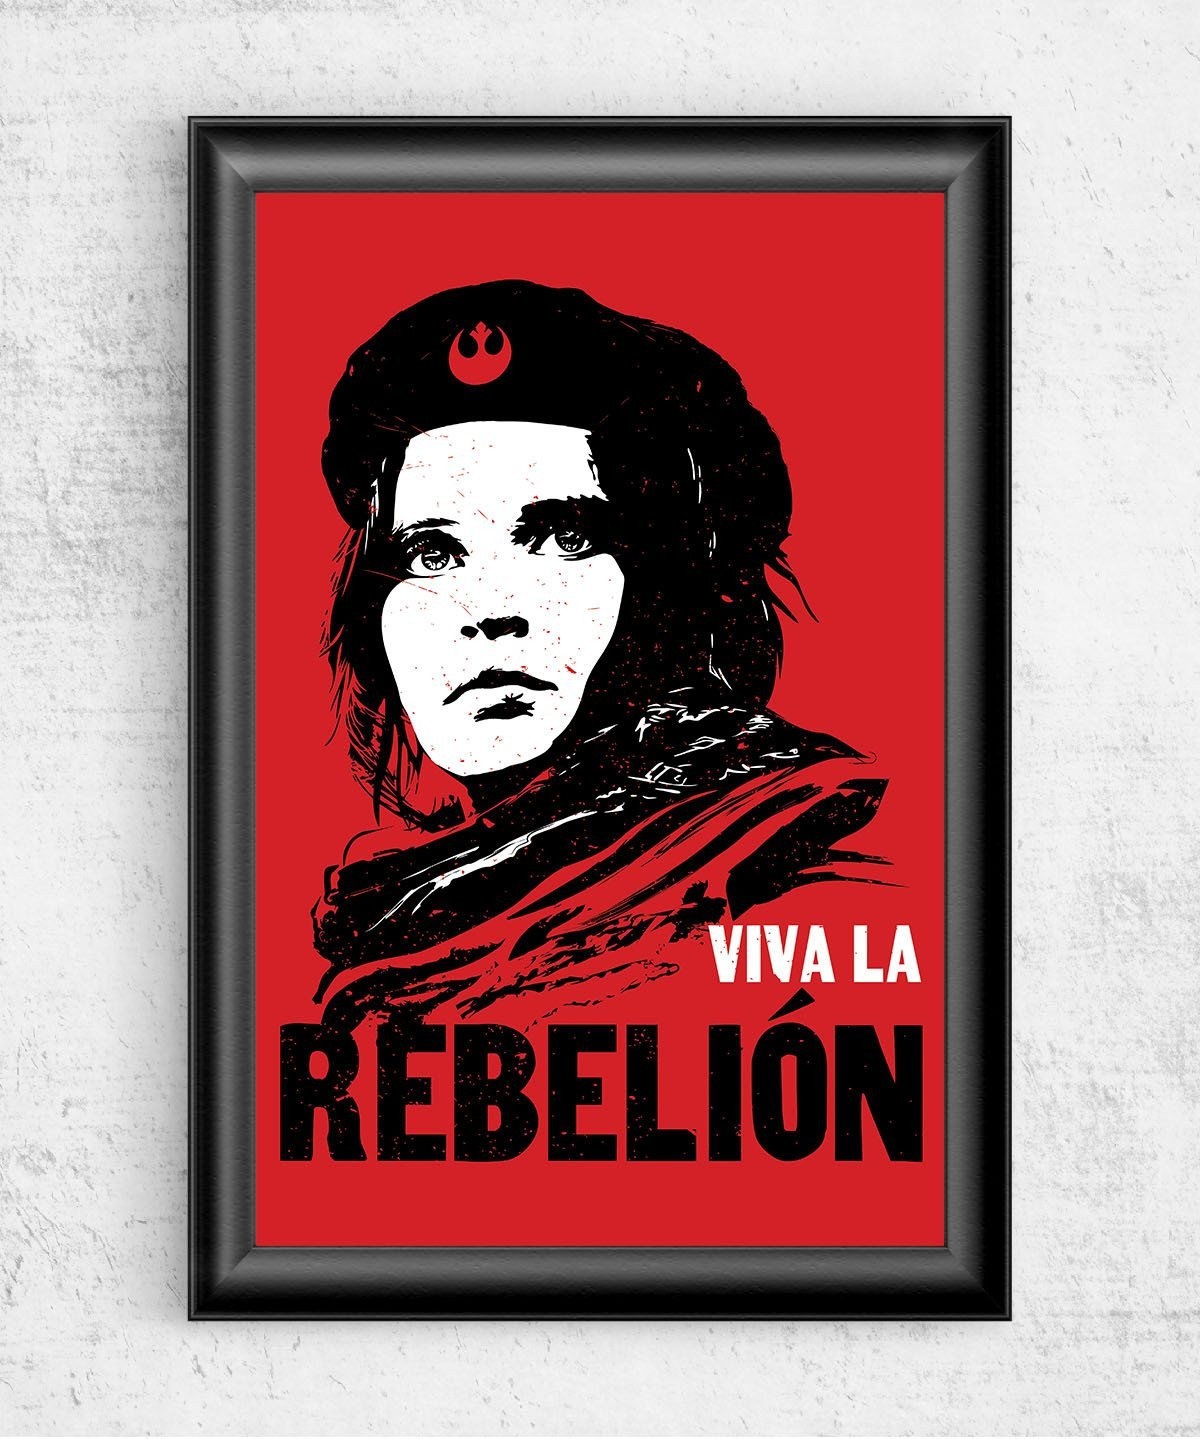 Viva La Rebelion Posters by Olipop - Pixel Empire